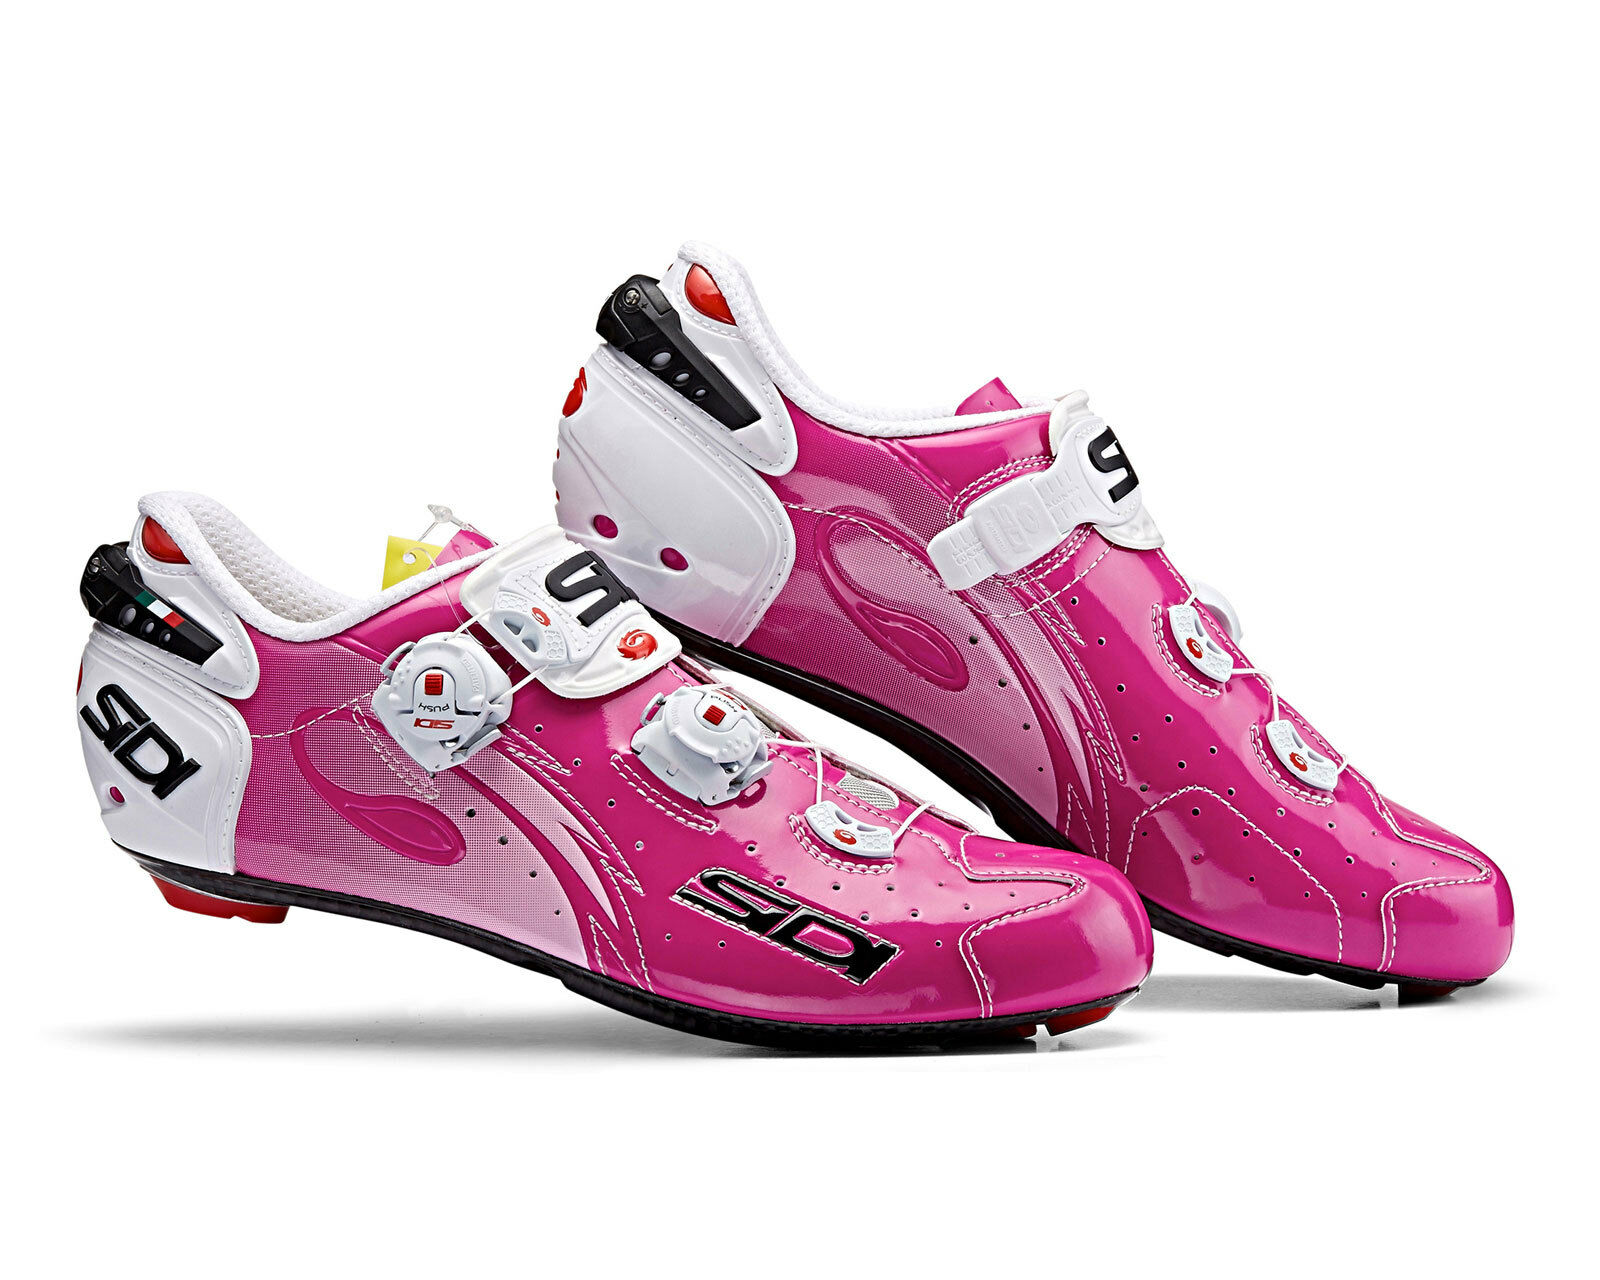 SIDI Wire Carbon Road Cycling  shoes - Fuxia  online discount